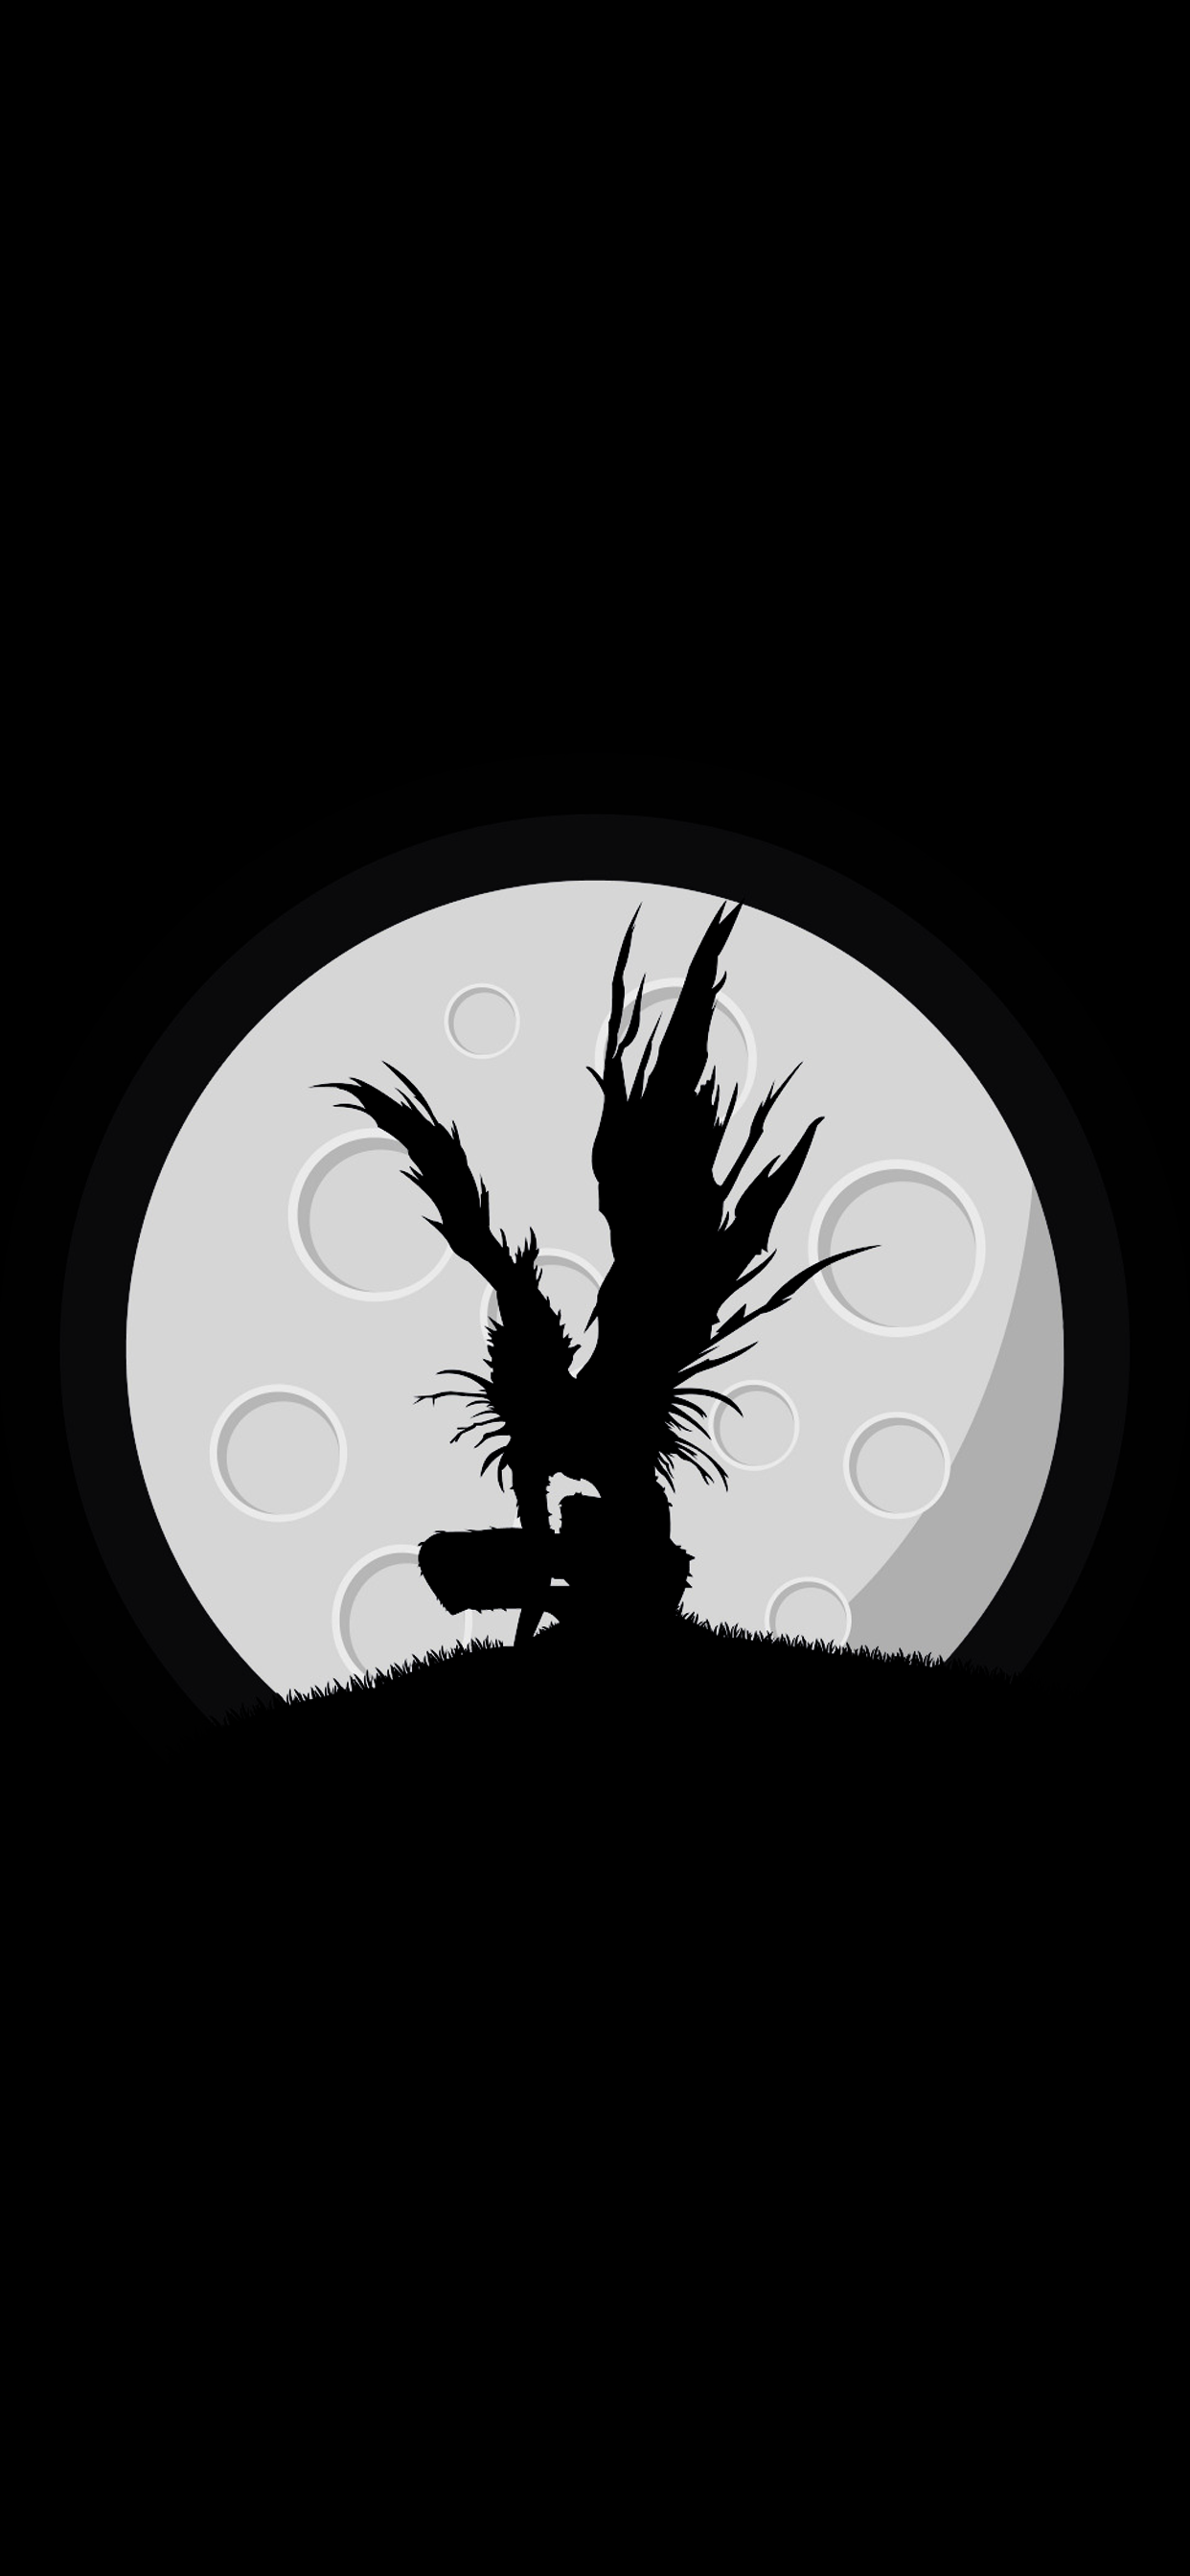 ryuk silhuete in a moon amoled wallpaper anime death note for mobile phone